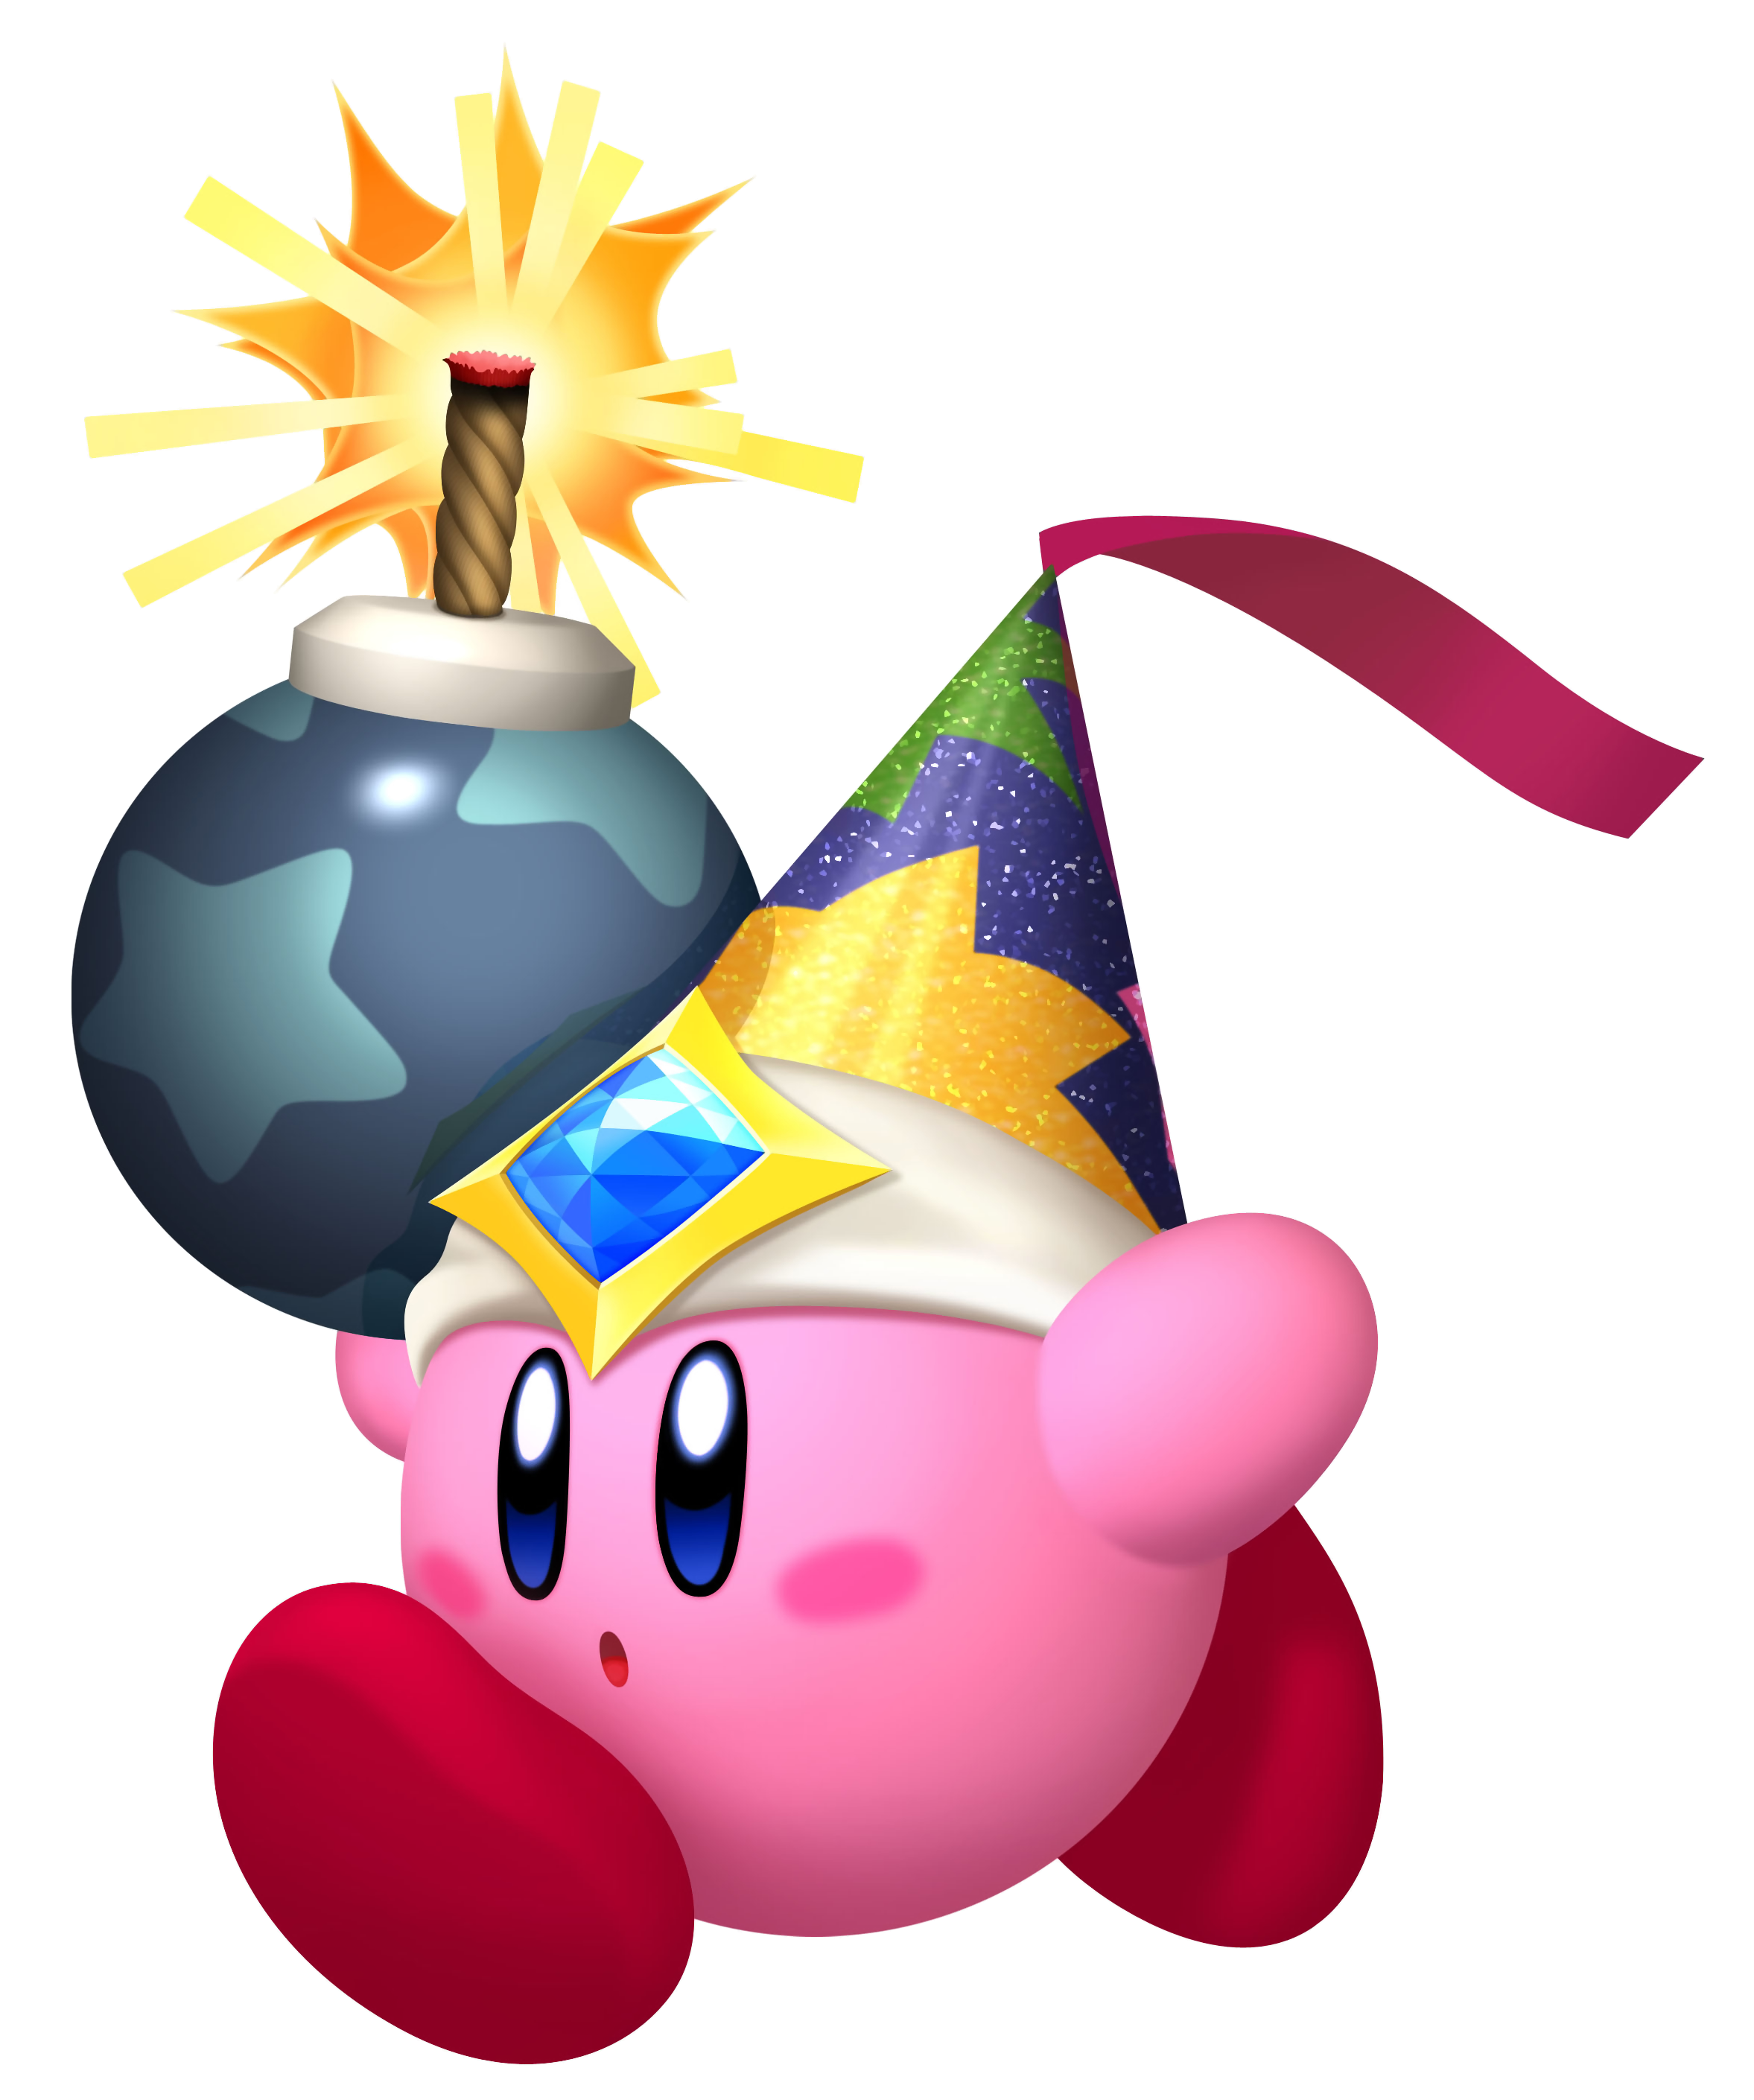 Bomb clipart video game. Kirby wiki the encyclopedia